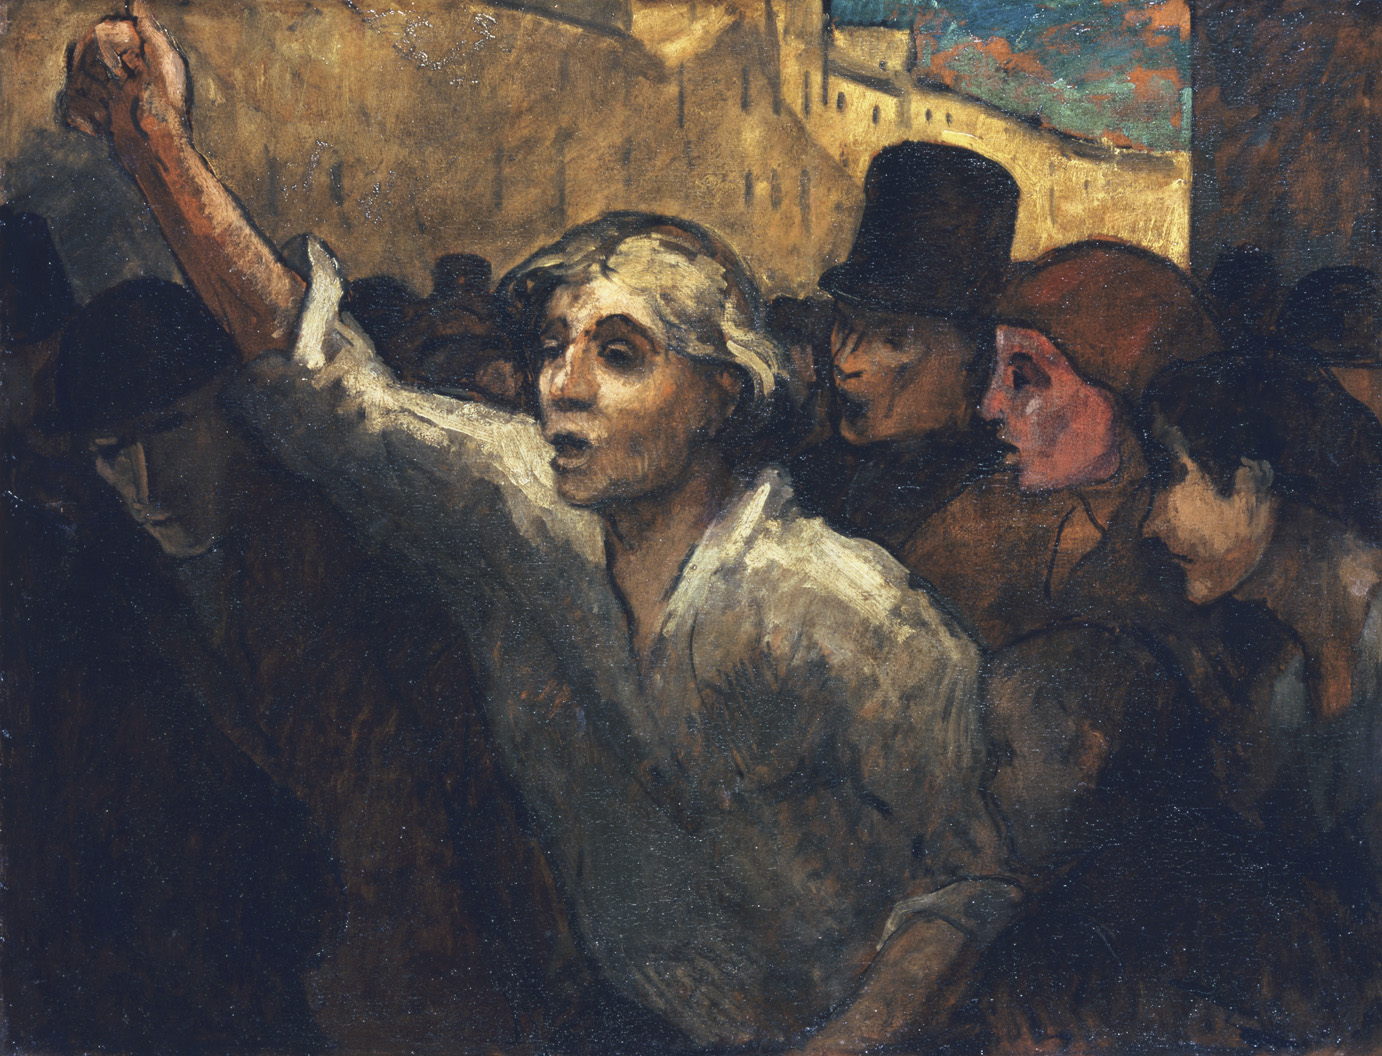 Painting of a young worker with his fist in the air.